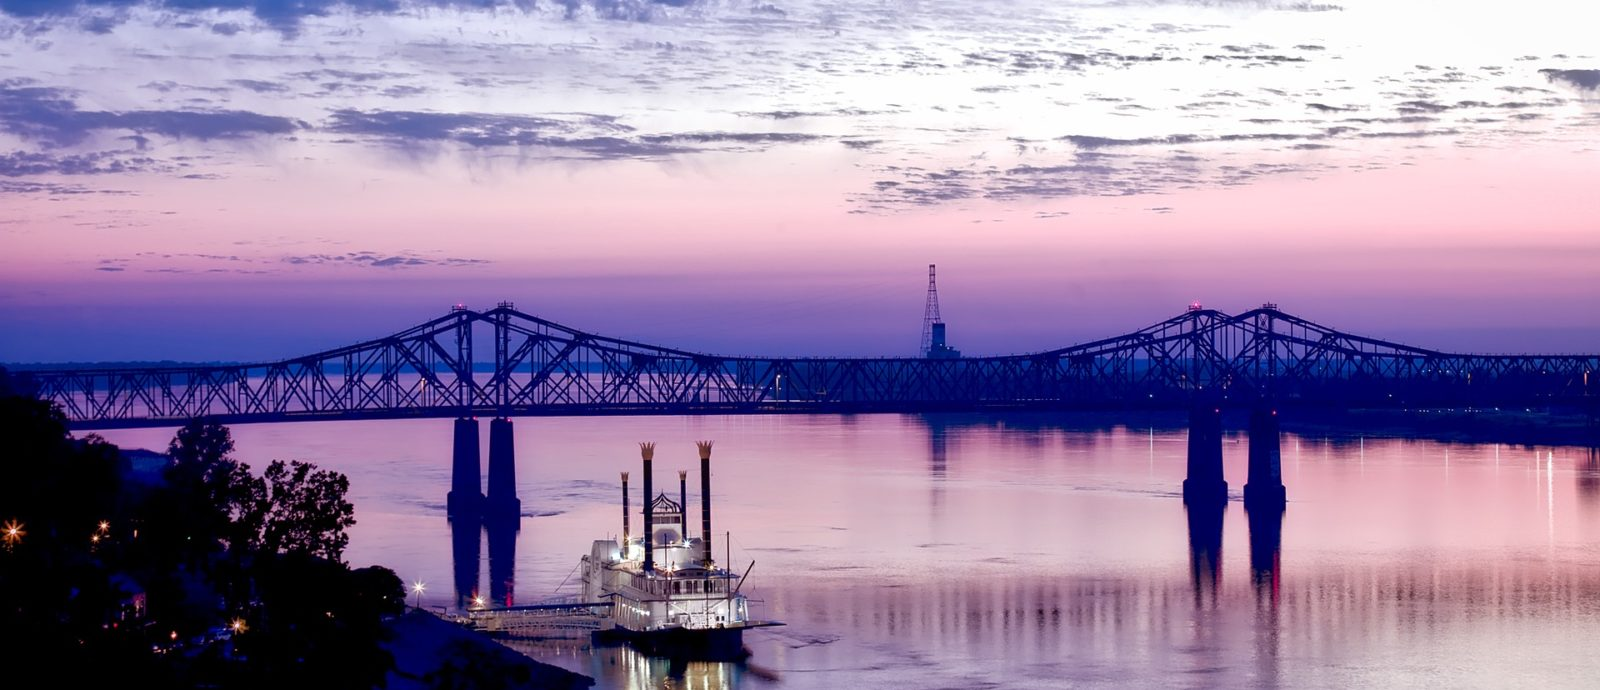 The Mississippi River. Source: Pixabay